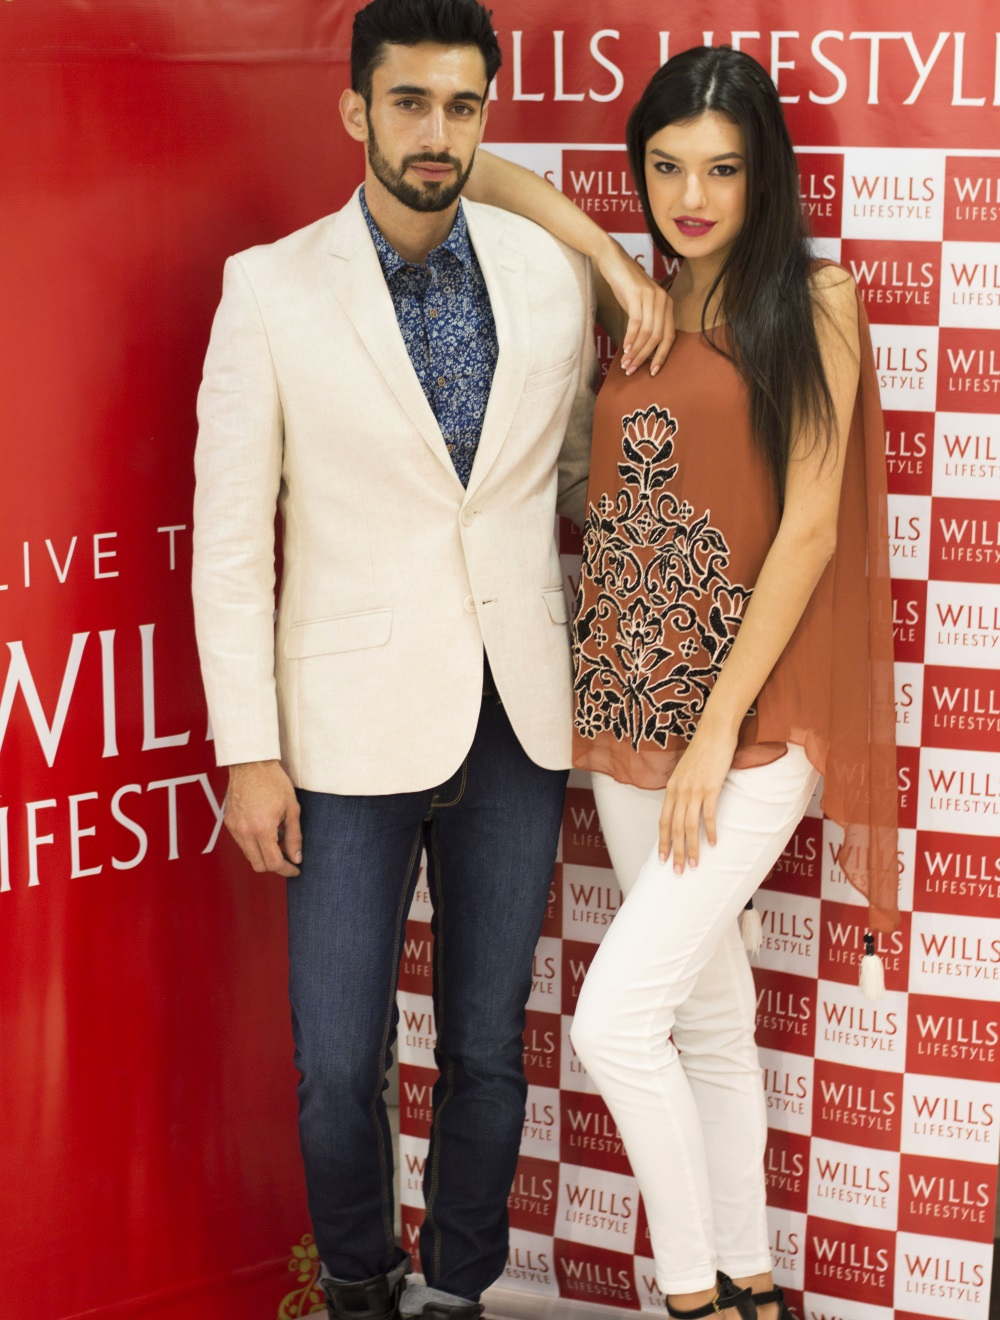 Wills lifestyle autumn winter 2016 new collection Bangalore fashion blog